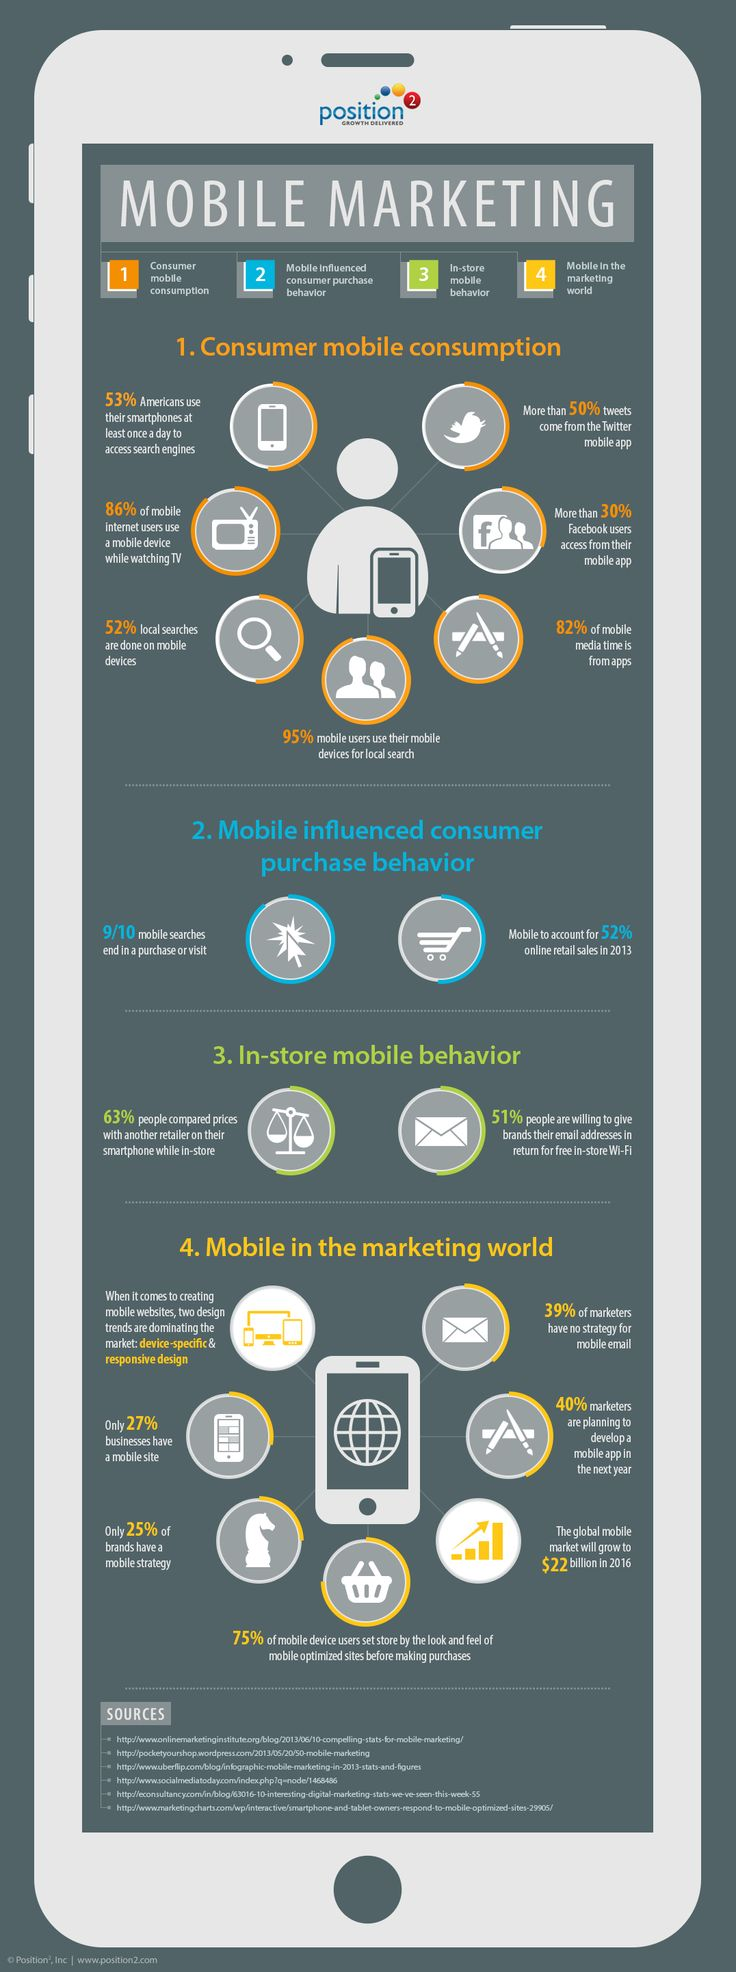 Mobile Marketing - Mobile Stands Tall in the Marketing World